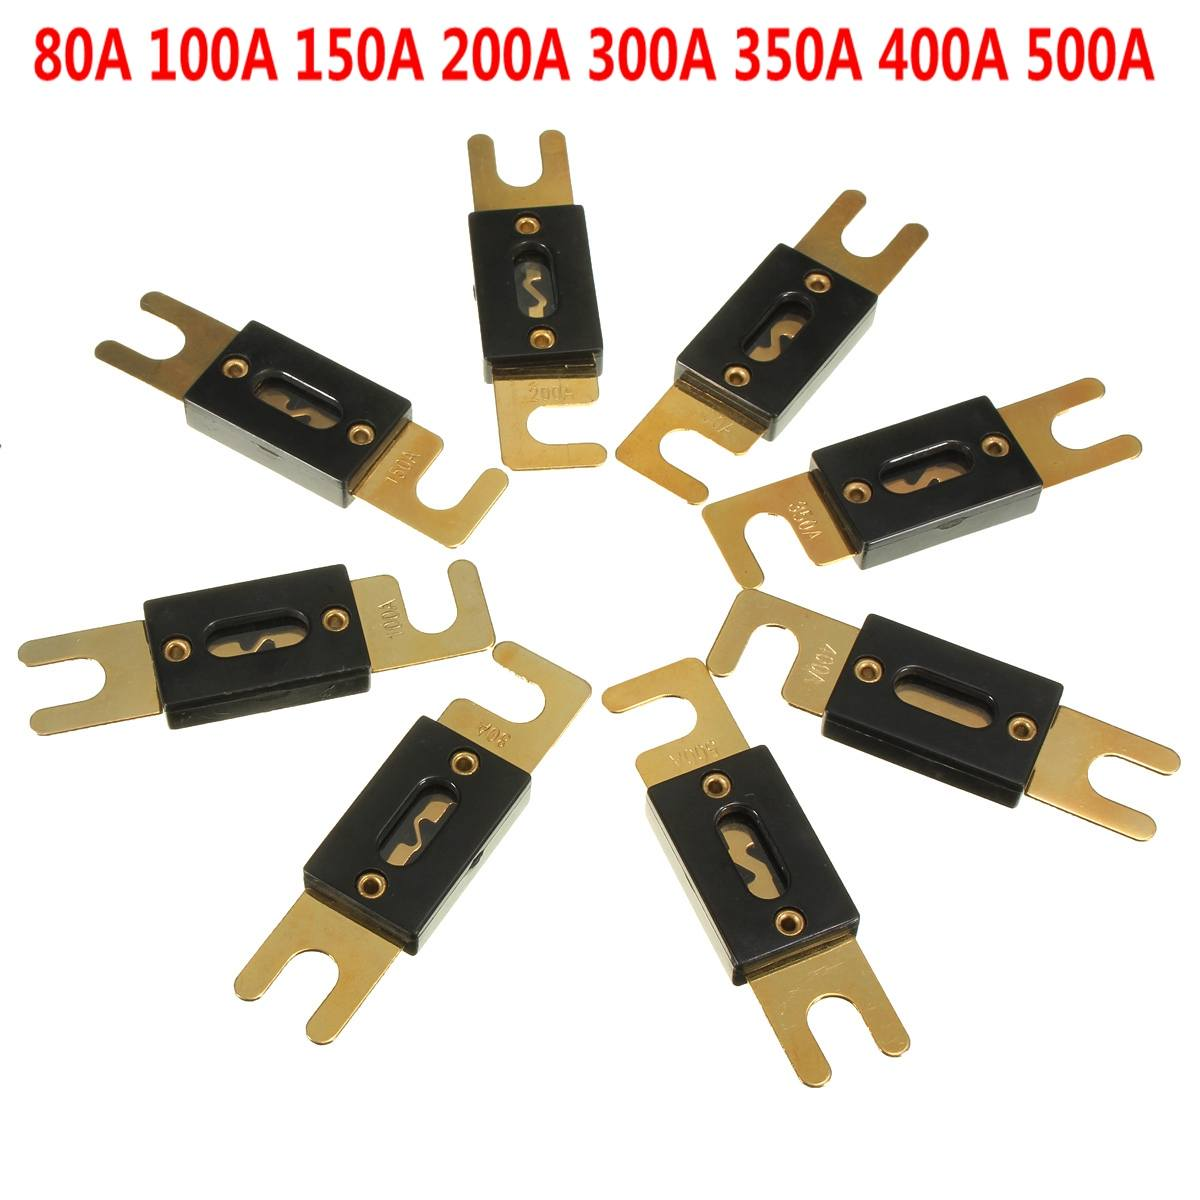 8Pcs Fuse 350A AMP ANL Type Gold Plated Blade Fuses For Auto Car Stereo UE